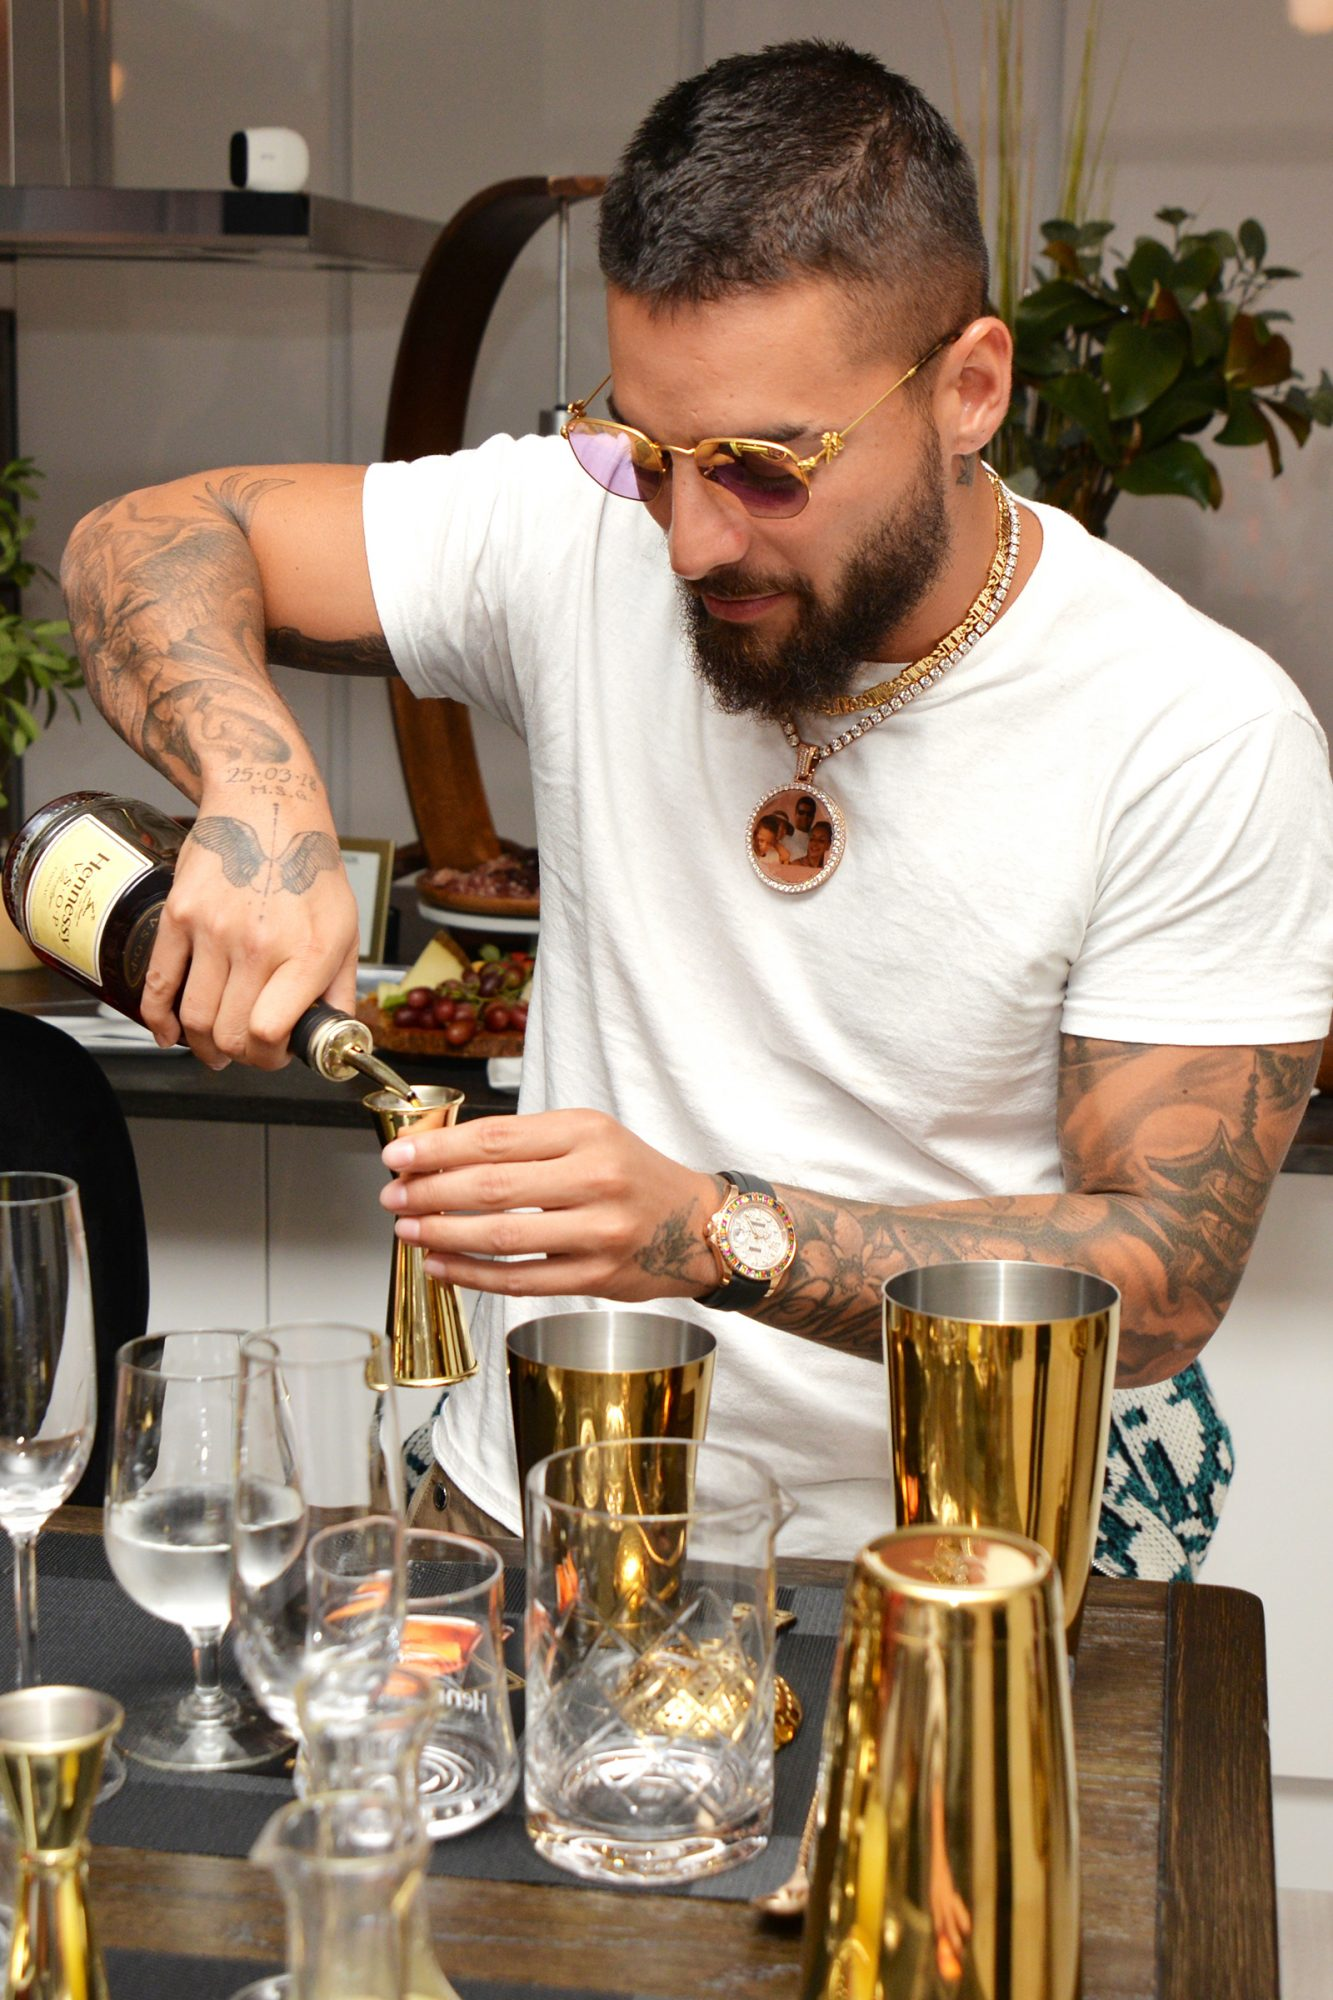 Hennessy hosts Maluma and friends at their Le Voyage Residency in Miami where they learned to create his 11:11 signature cocktail while being immersed in the distinct world of Cognac